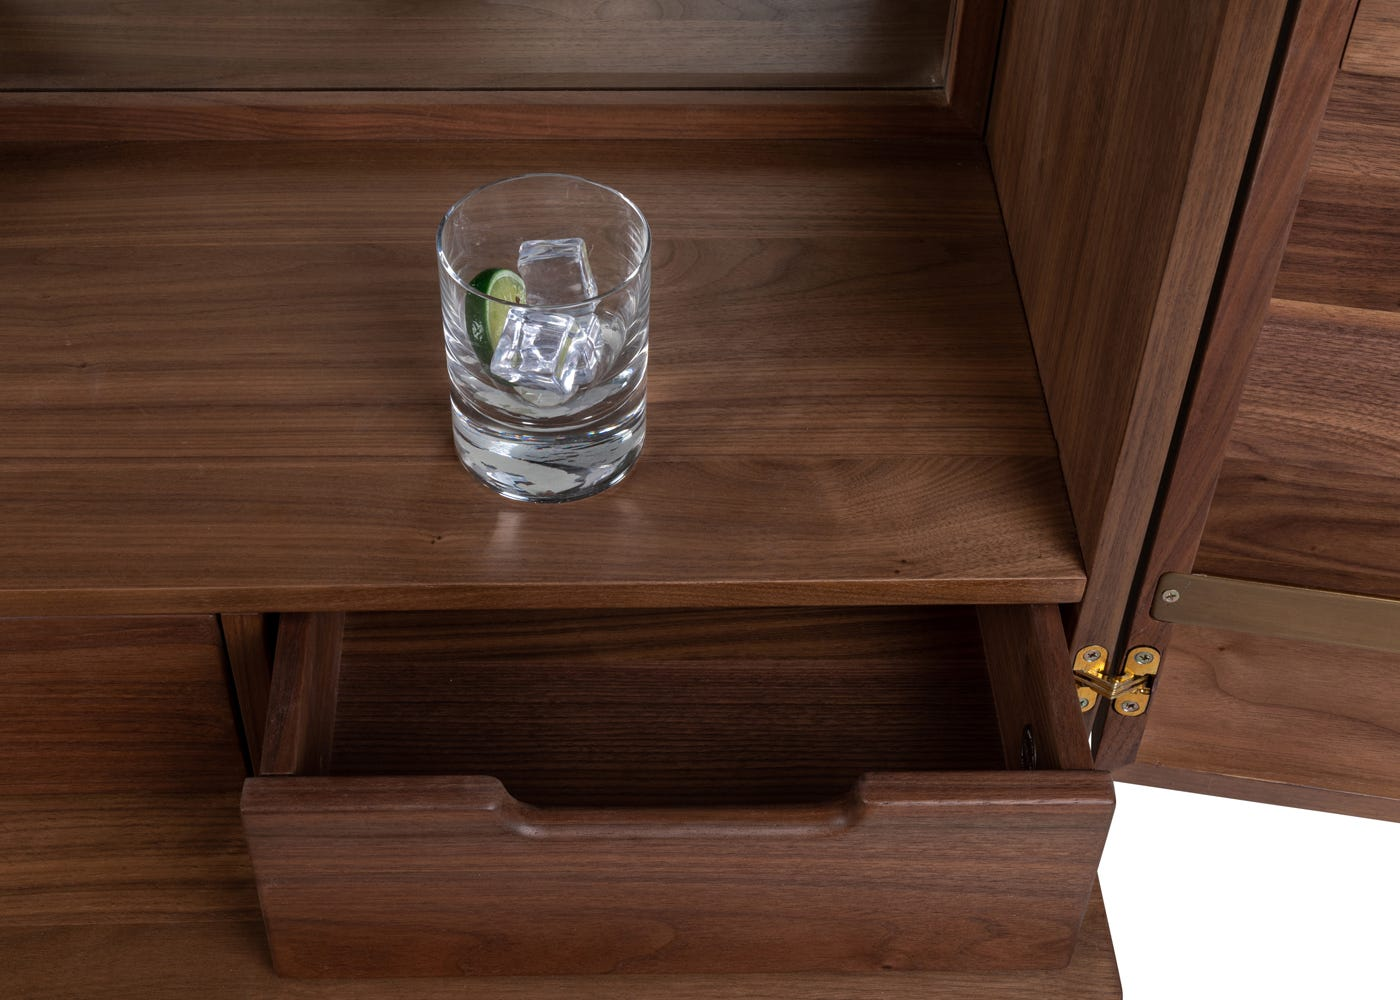 As shown: storage compartment.